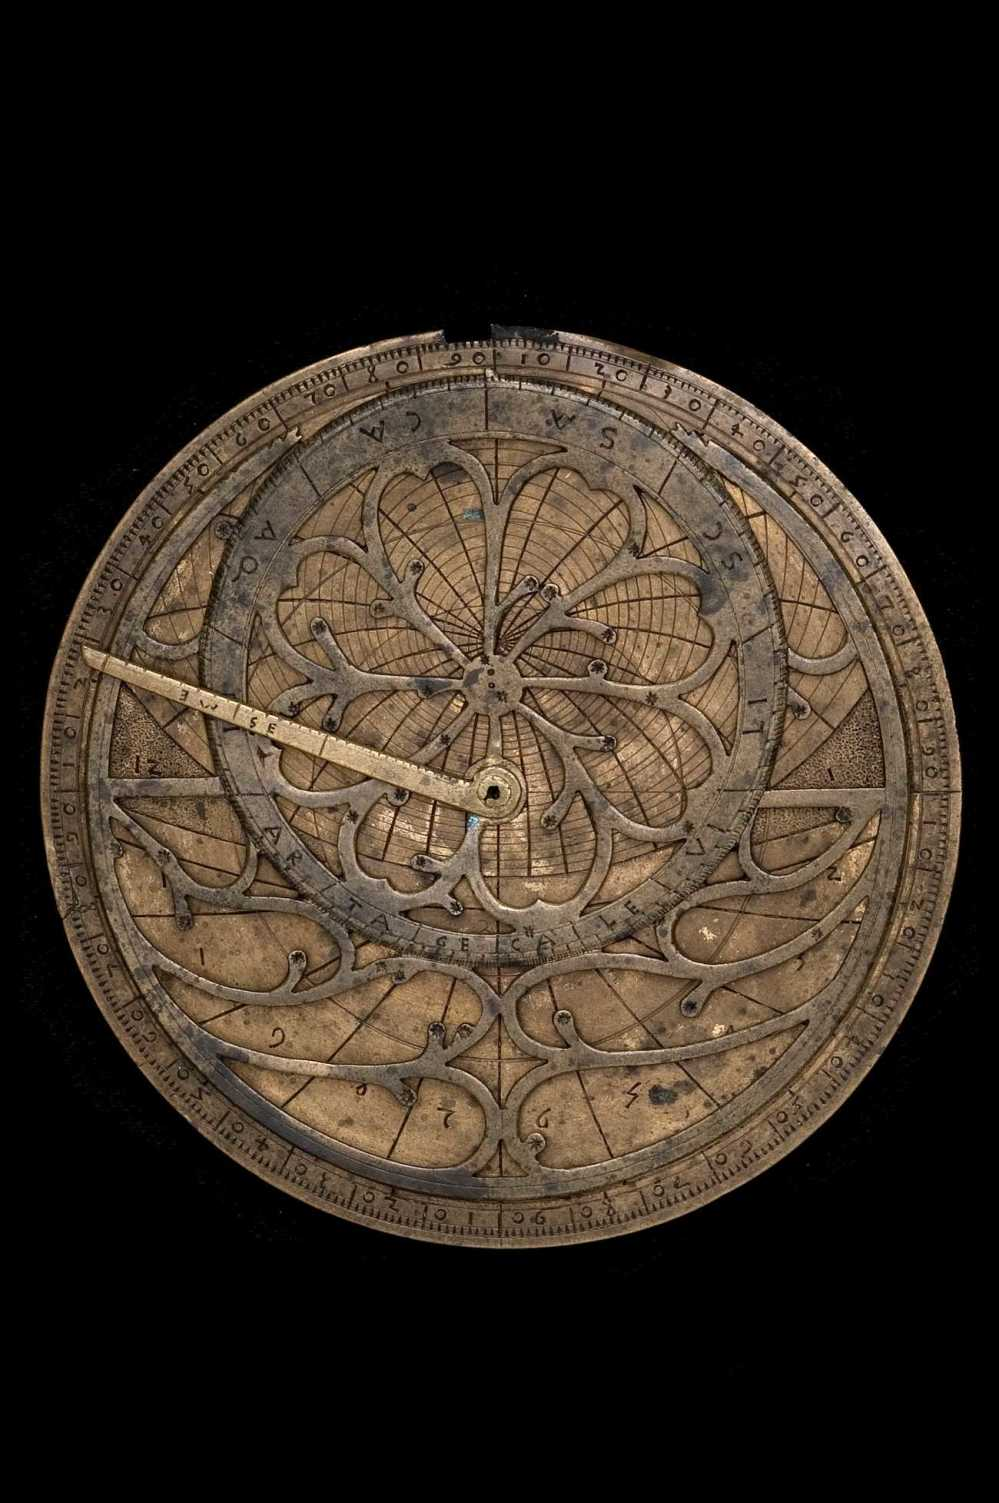 preview image for Astrolabe and Astrological Volvelle, Italian, Later 15th Century